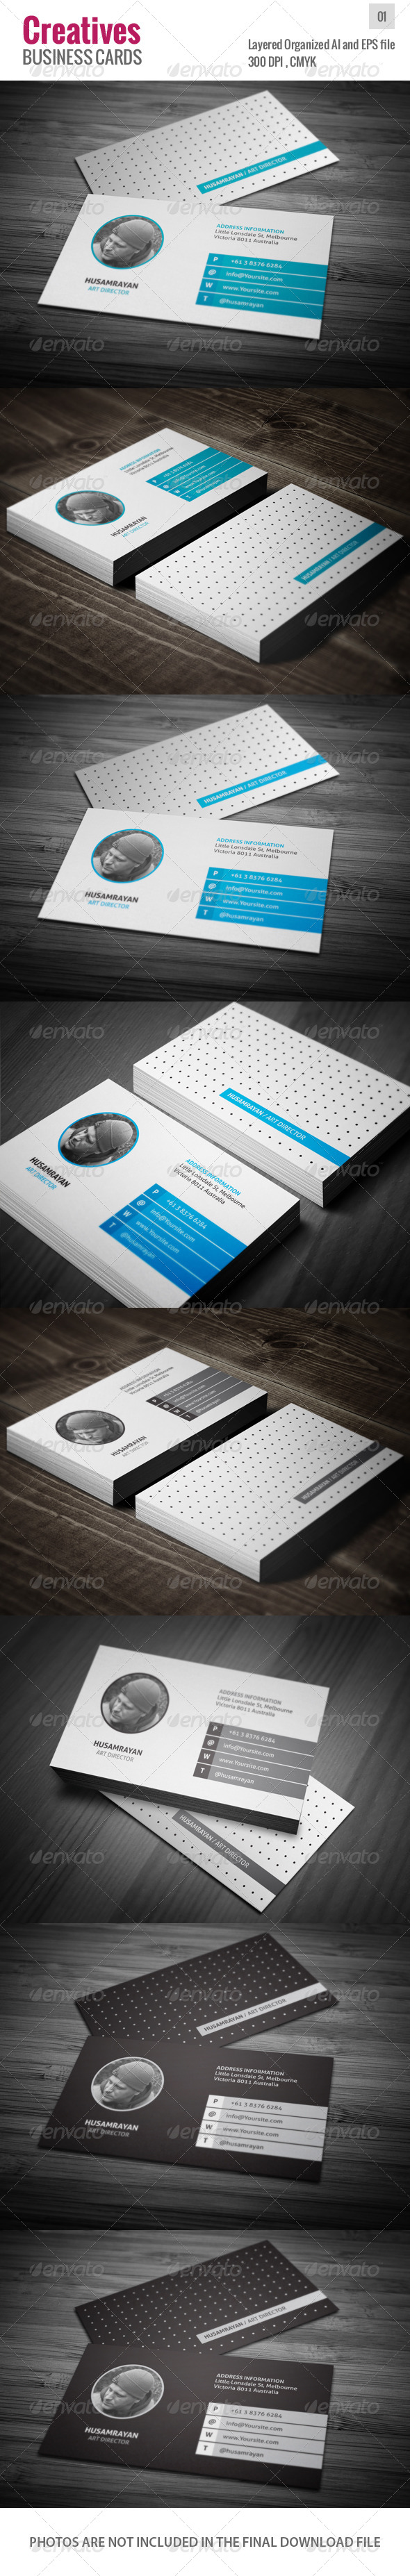 GraphicRiver Creatives Business Cards v.01 4638615